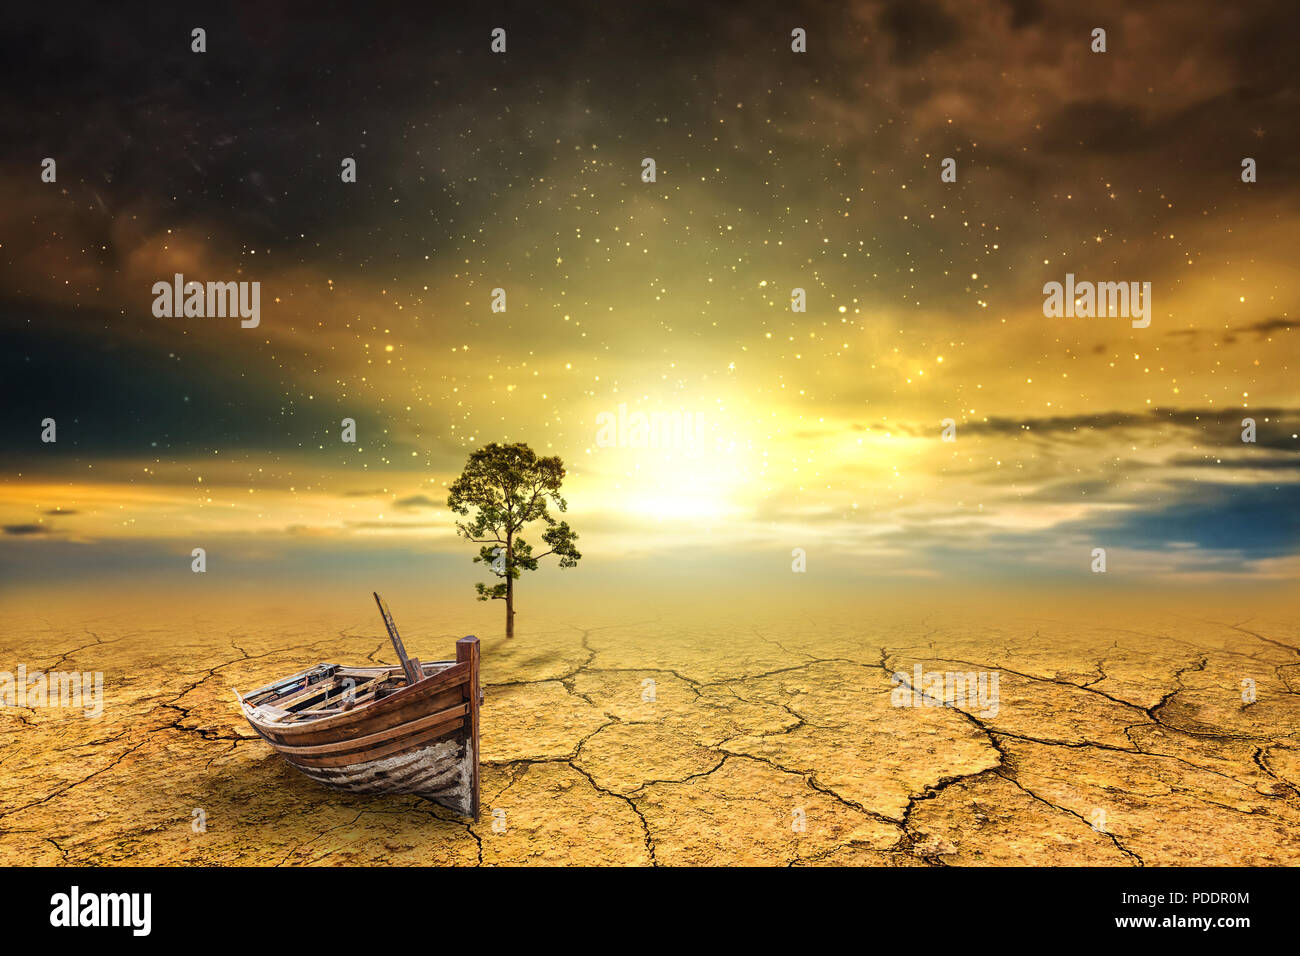 Shipwreck tree dry soil texture background - Stock Image